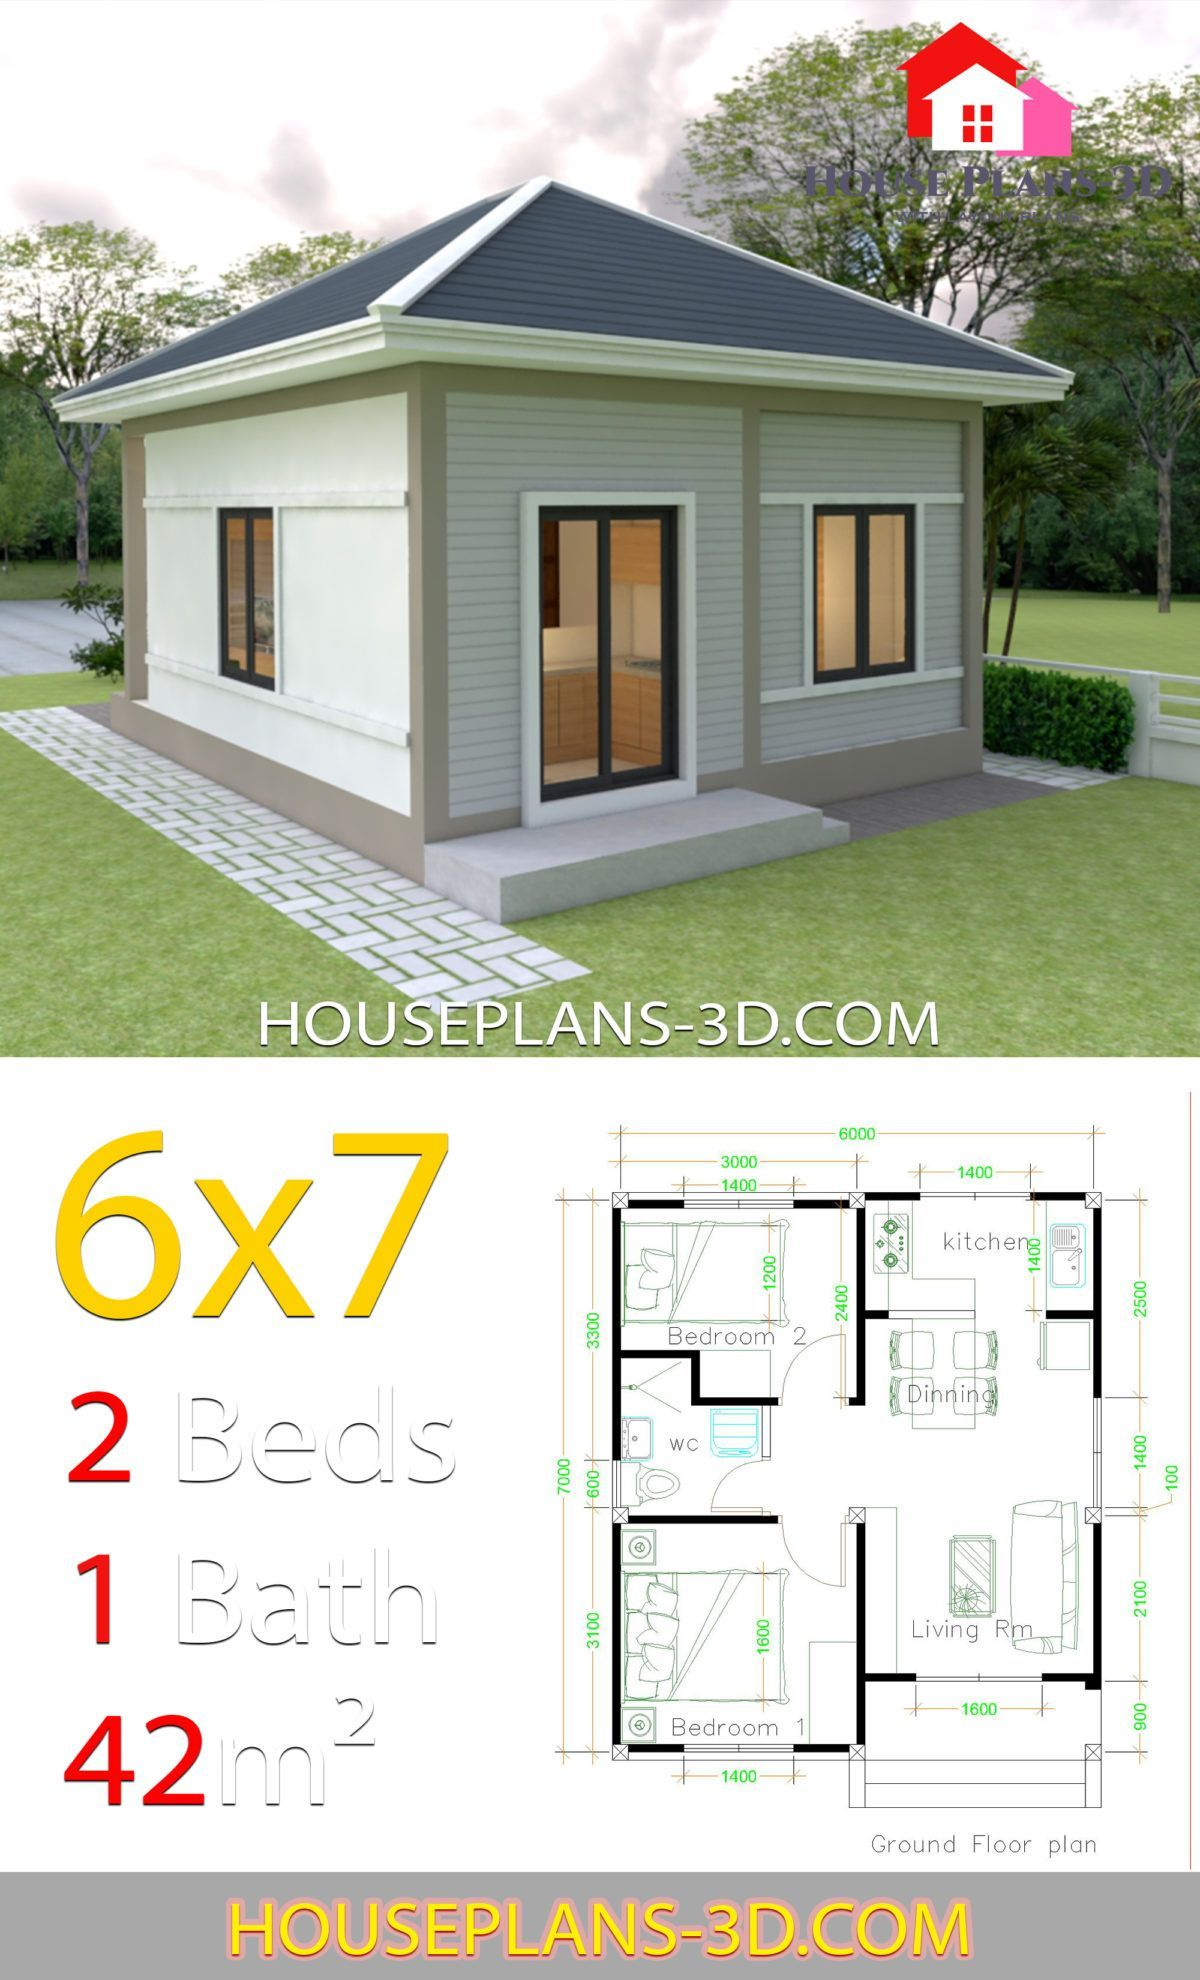 Simple House Plans 6x7 With 2 Bedrooms Hip Roof House Plans 3d 6x7 Bedrooms Dreamhouse In 2020 Simple House Plans Simple House Design Simple House